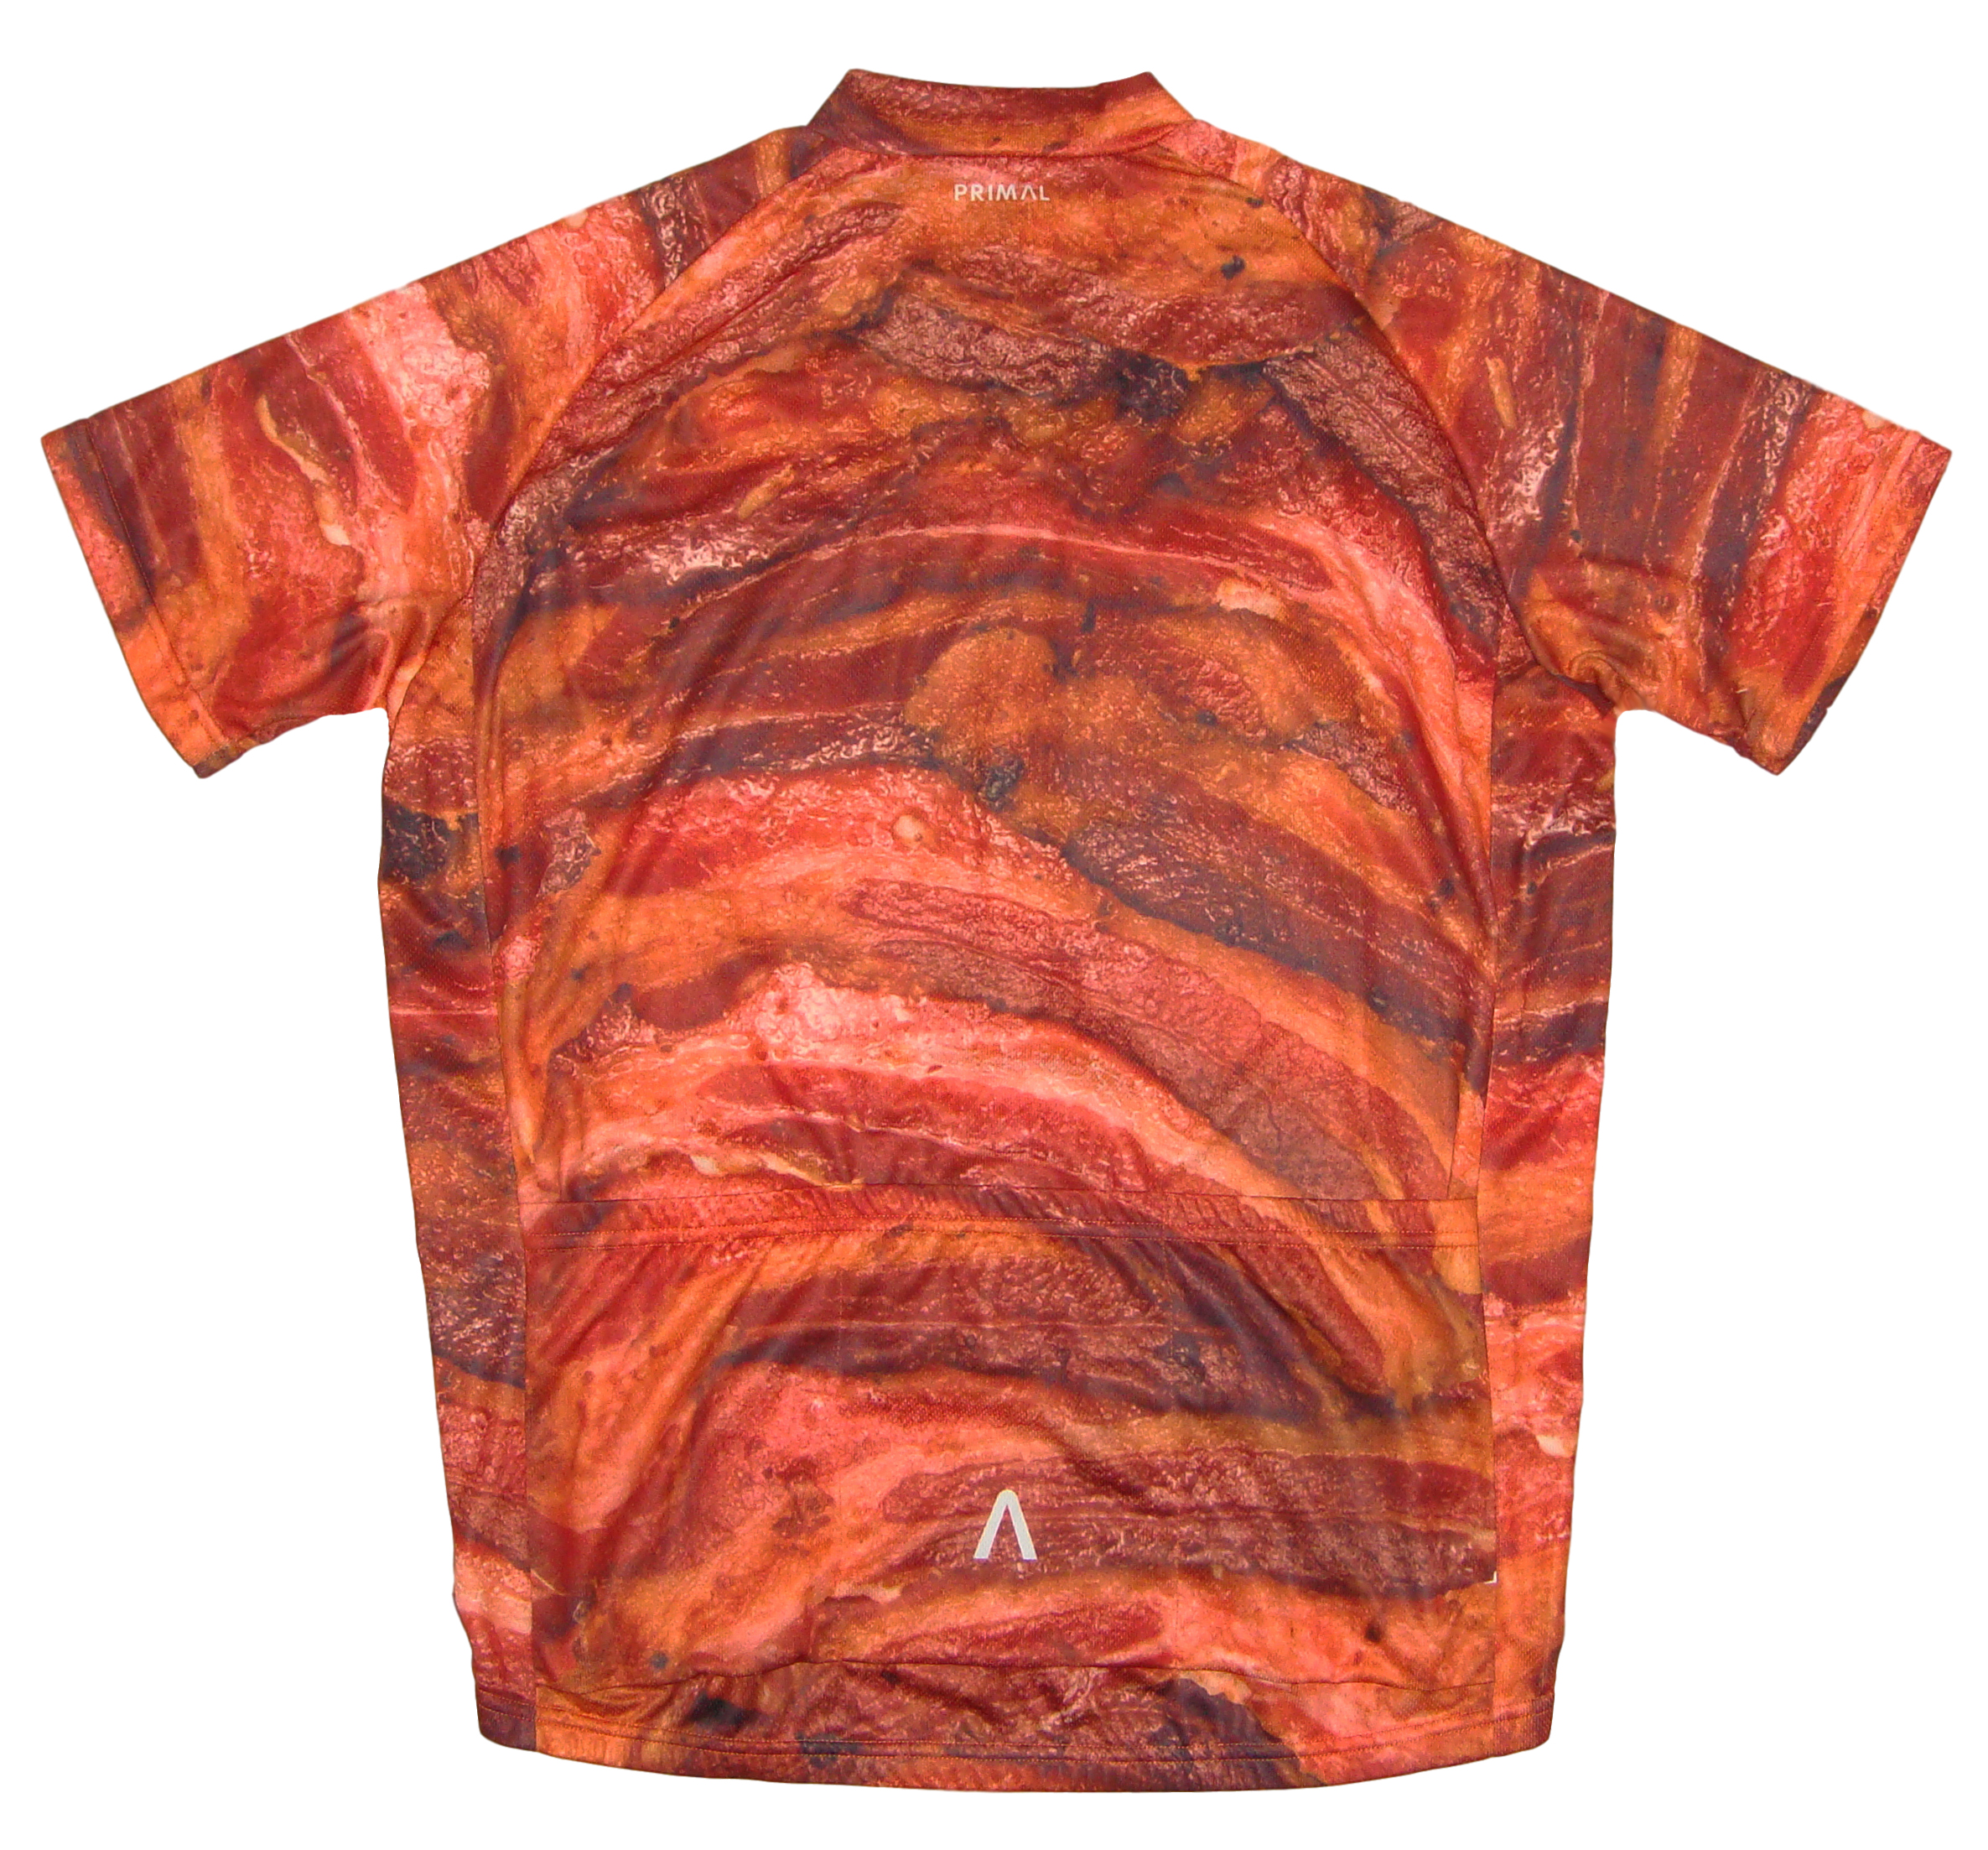 d43ffb5bf Primal Wear Bacon Cycling Jersey Mens short sleeve bicycle bike with DeFeet  sox. Thumb One. Thumb Two